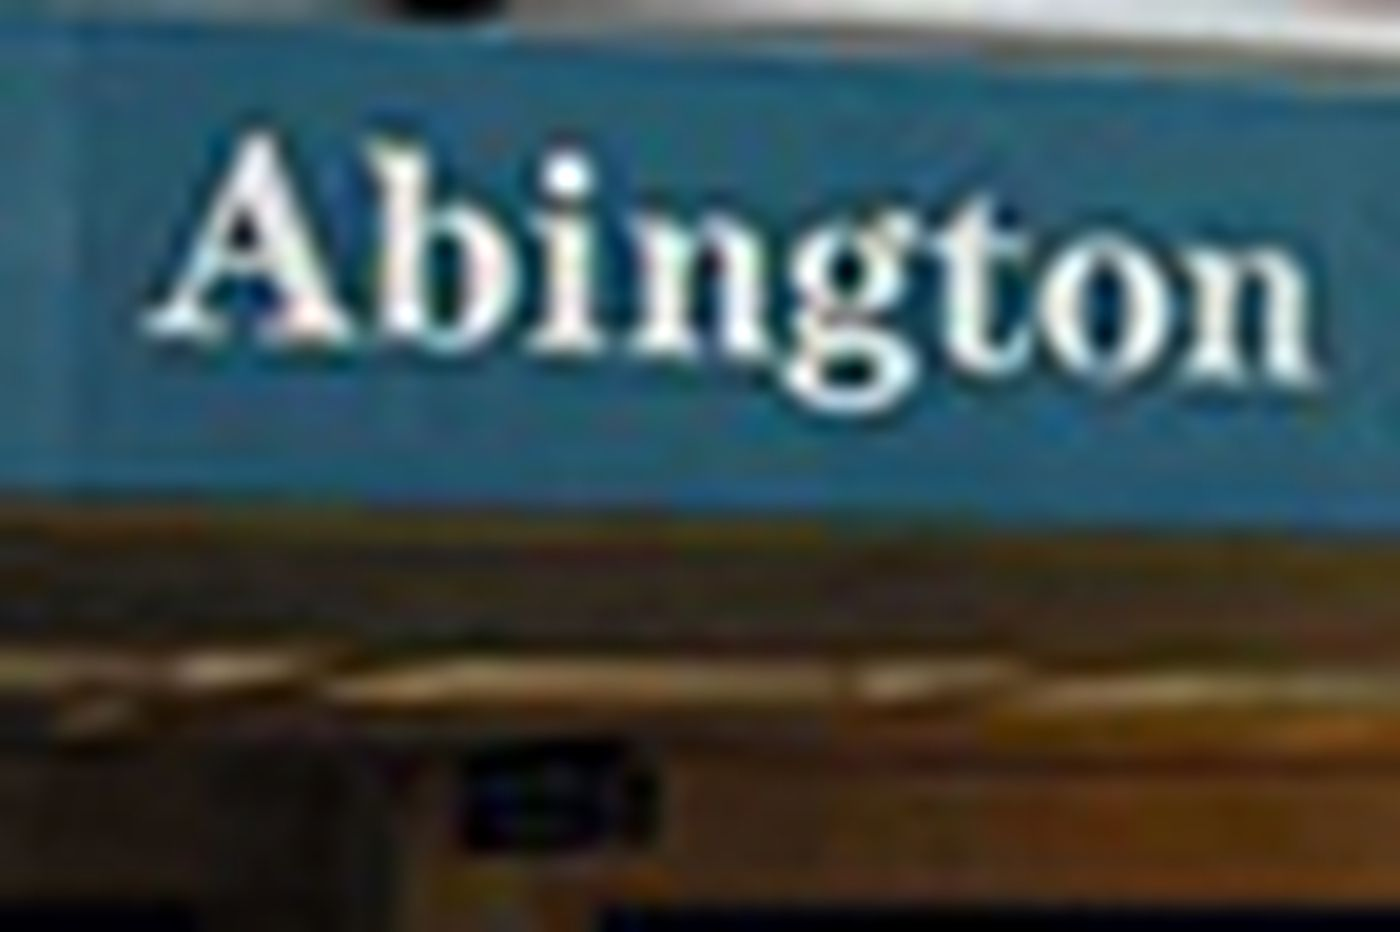 Karen Heller: Anger at Abington hospital